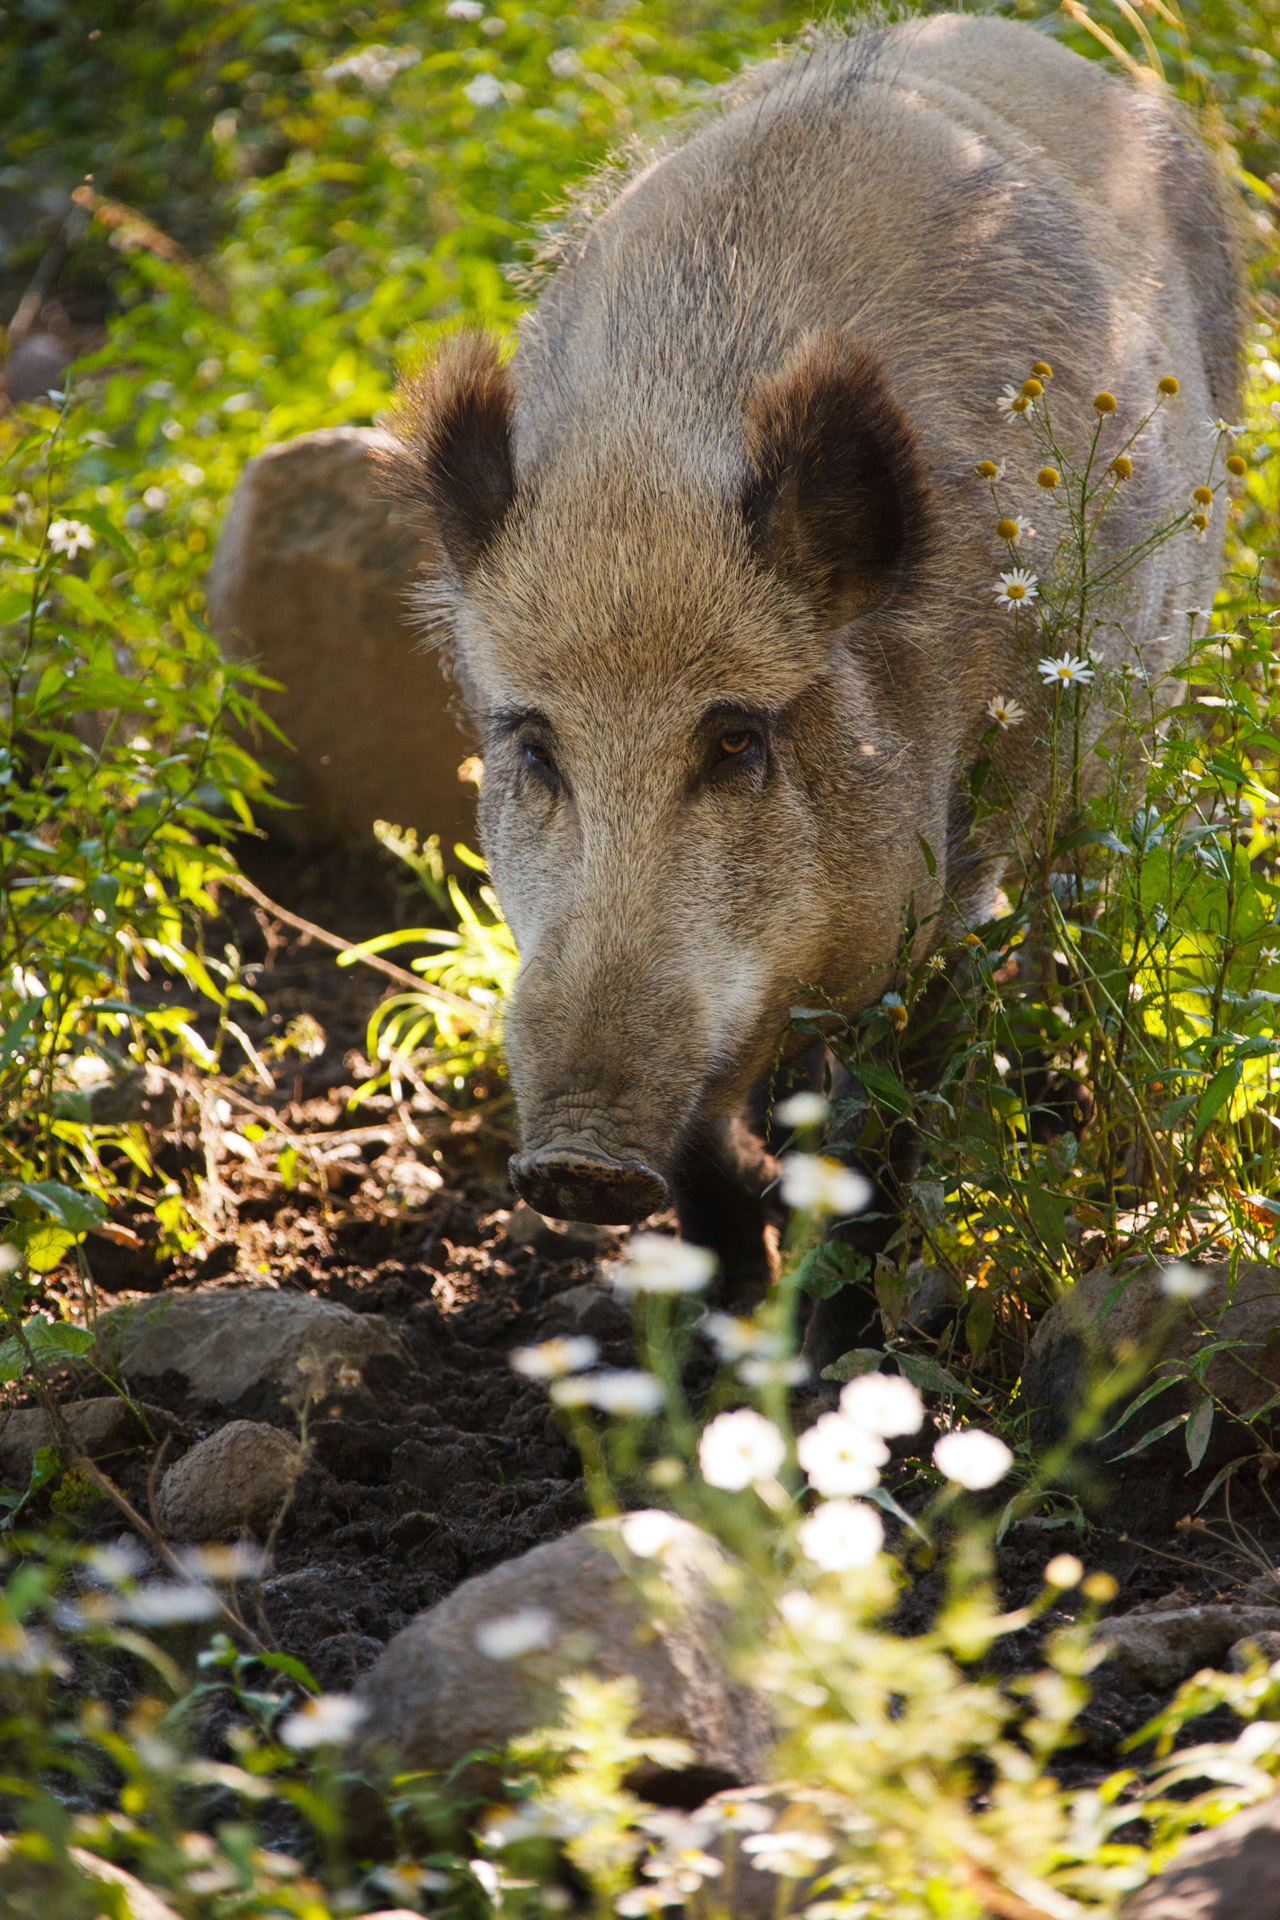 Online Outdoor Wild Boar Free Stock Photo - Public Domain Pictures